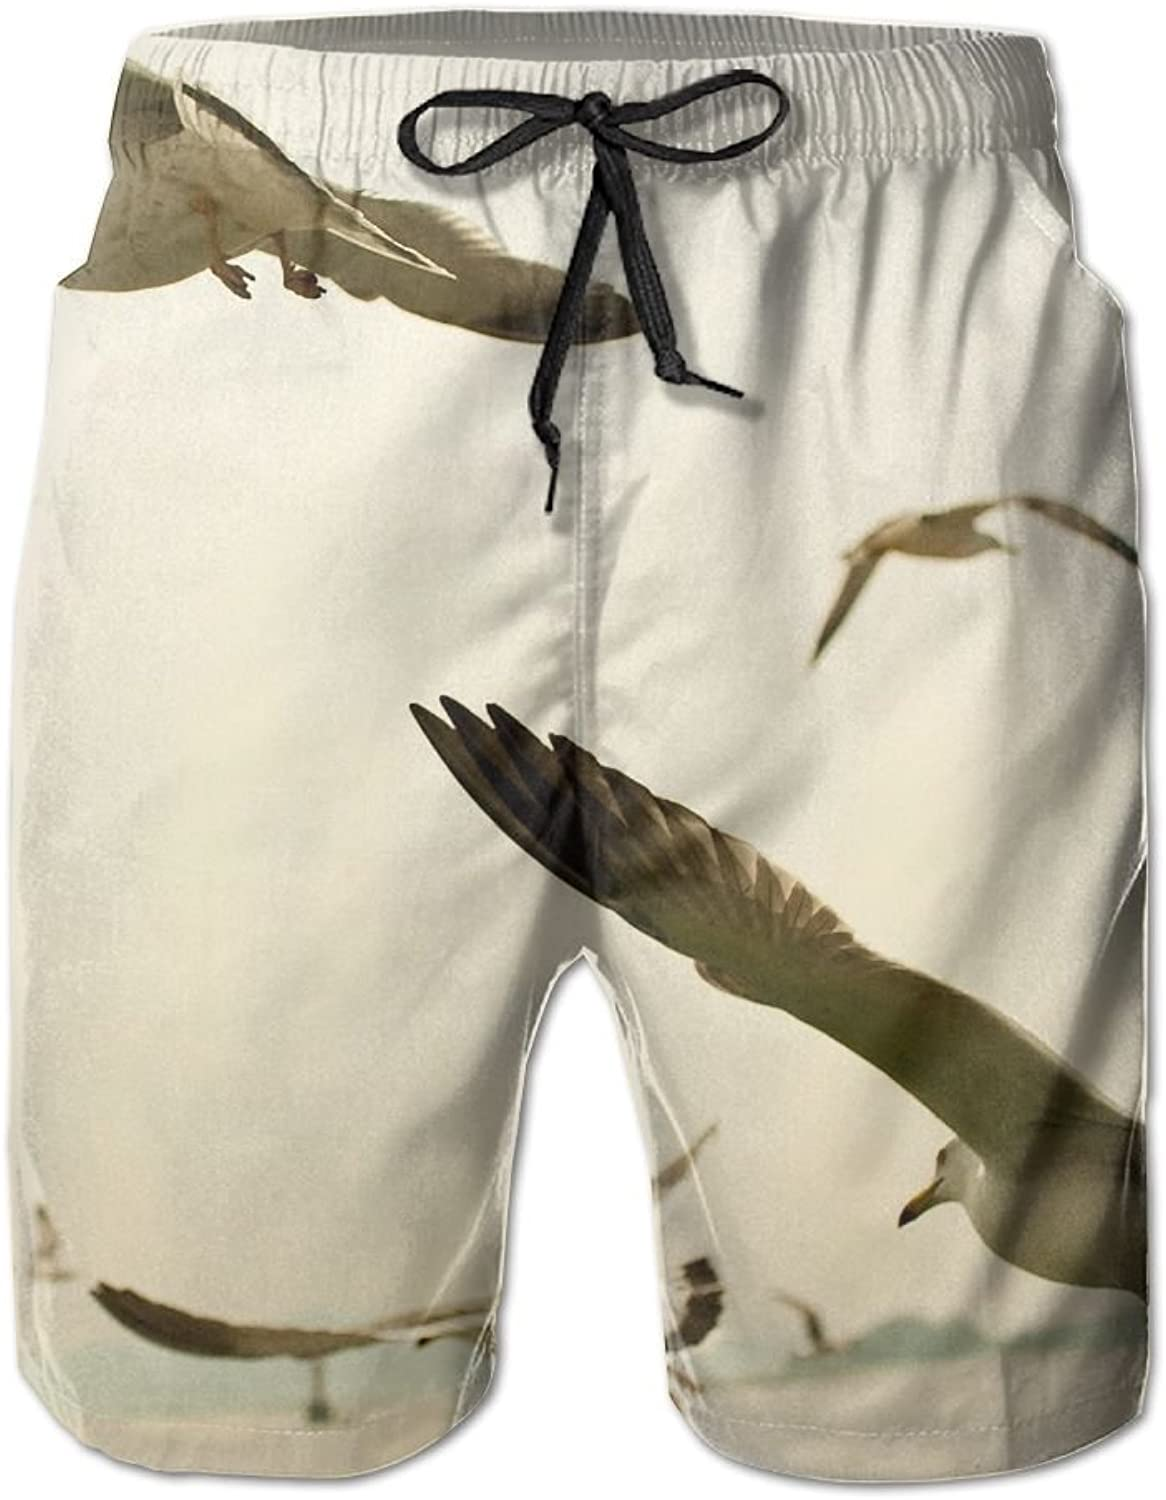 a650cddd87d22 Tydo Quick Quick Quick Dry Beach Shorts Seagulls Painting Swim Trunks Surf  Board Pants With Pockets For Men 16138a